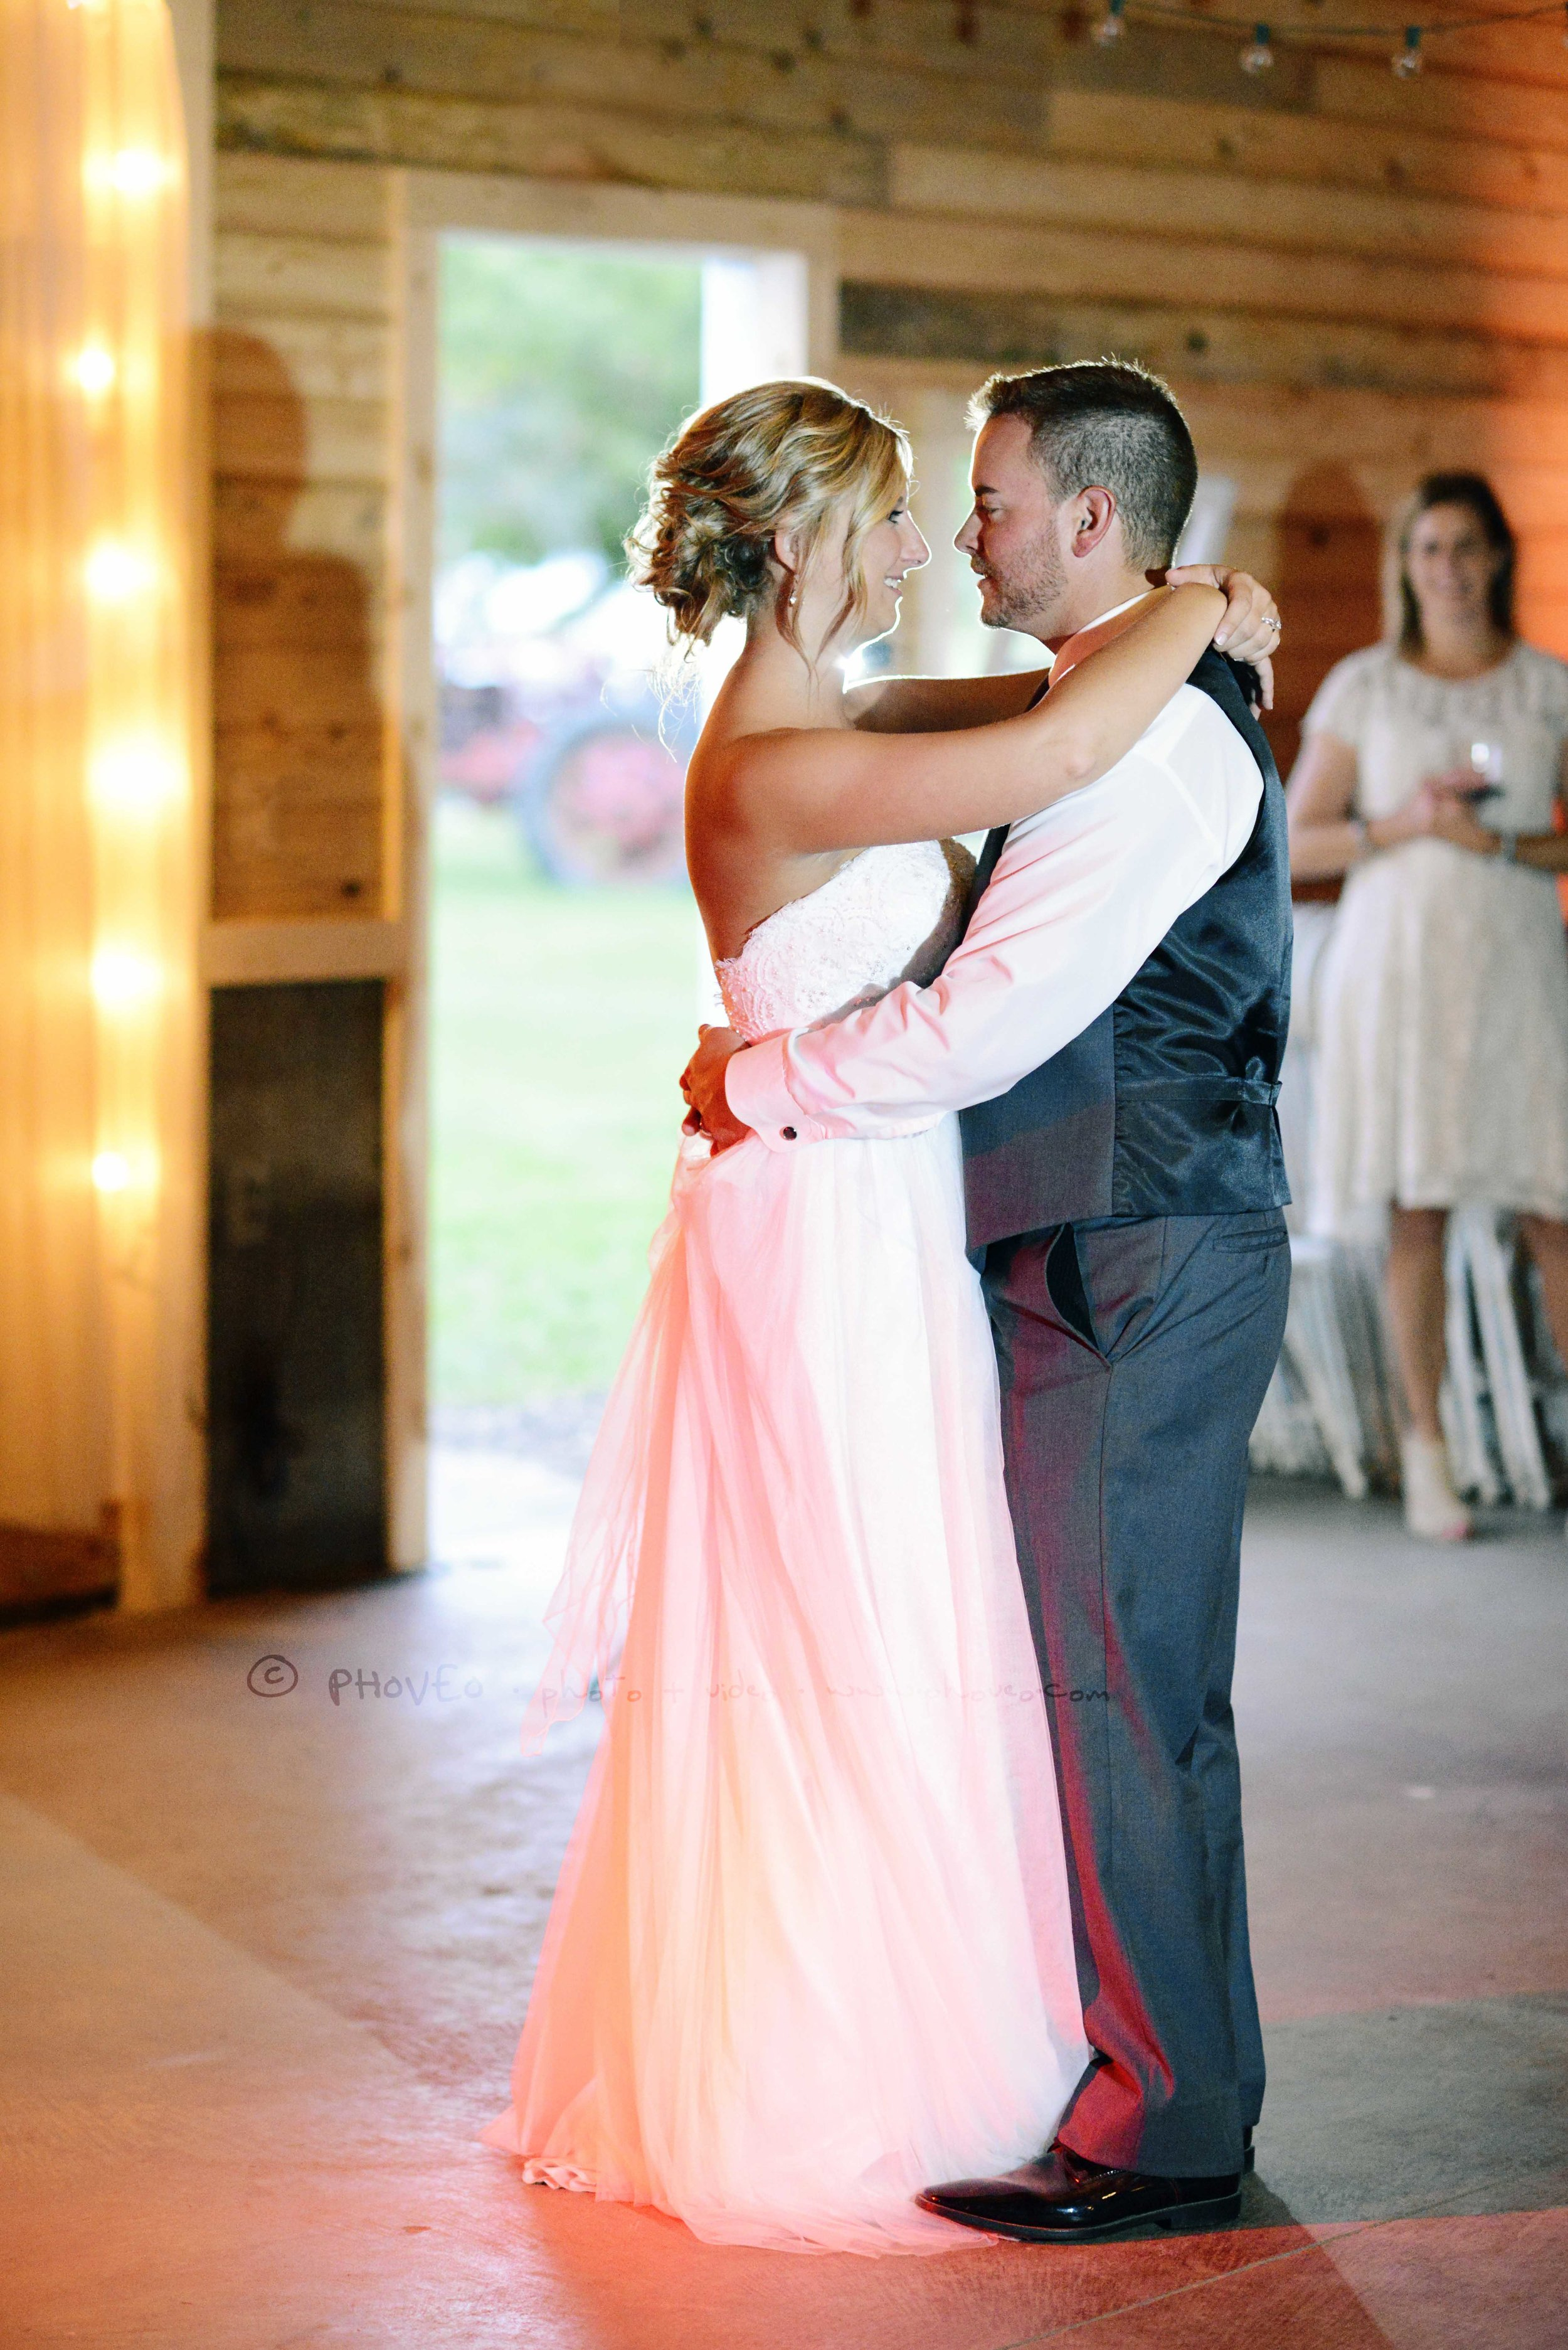 WM_20160826_Katelyn+Tony_98.jpg